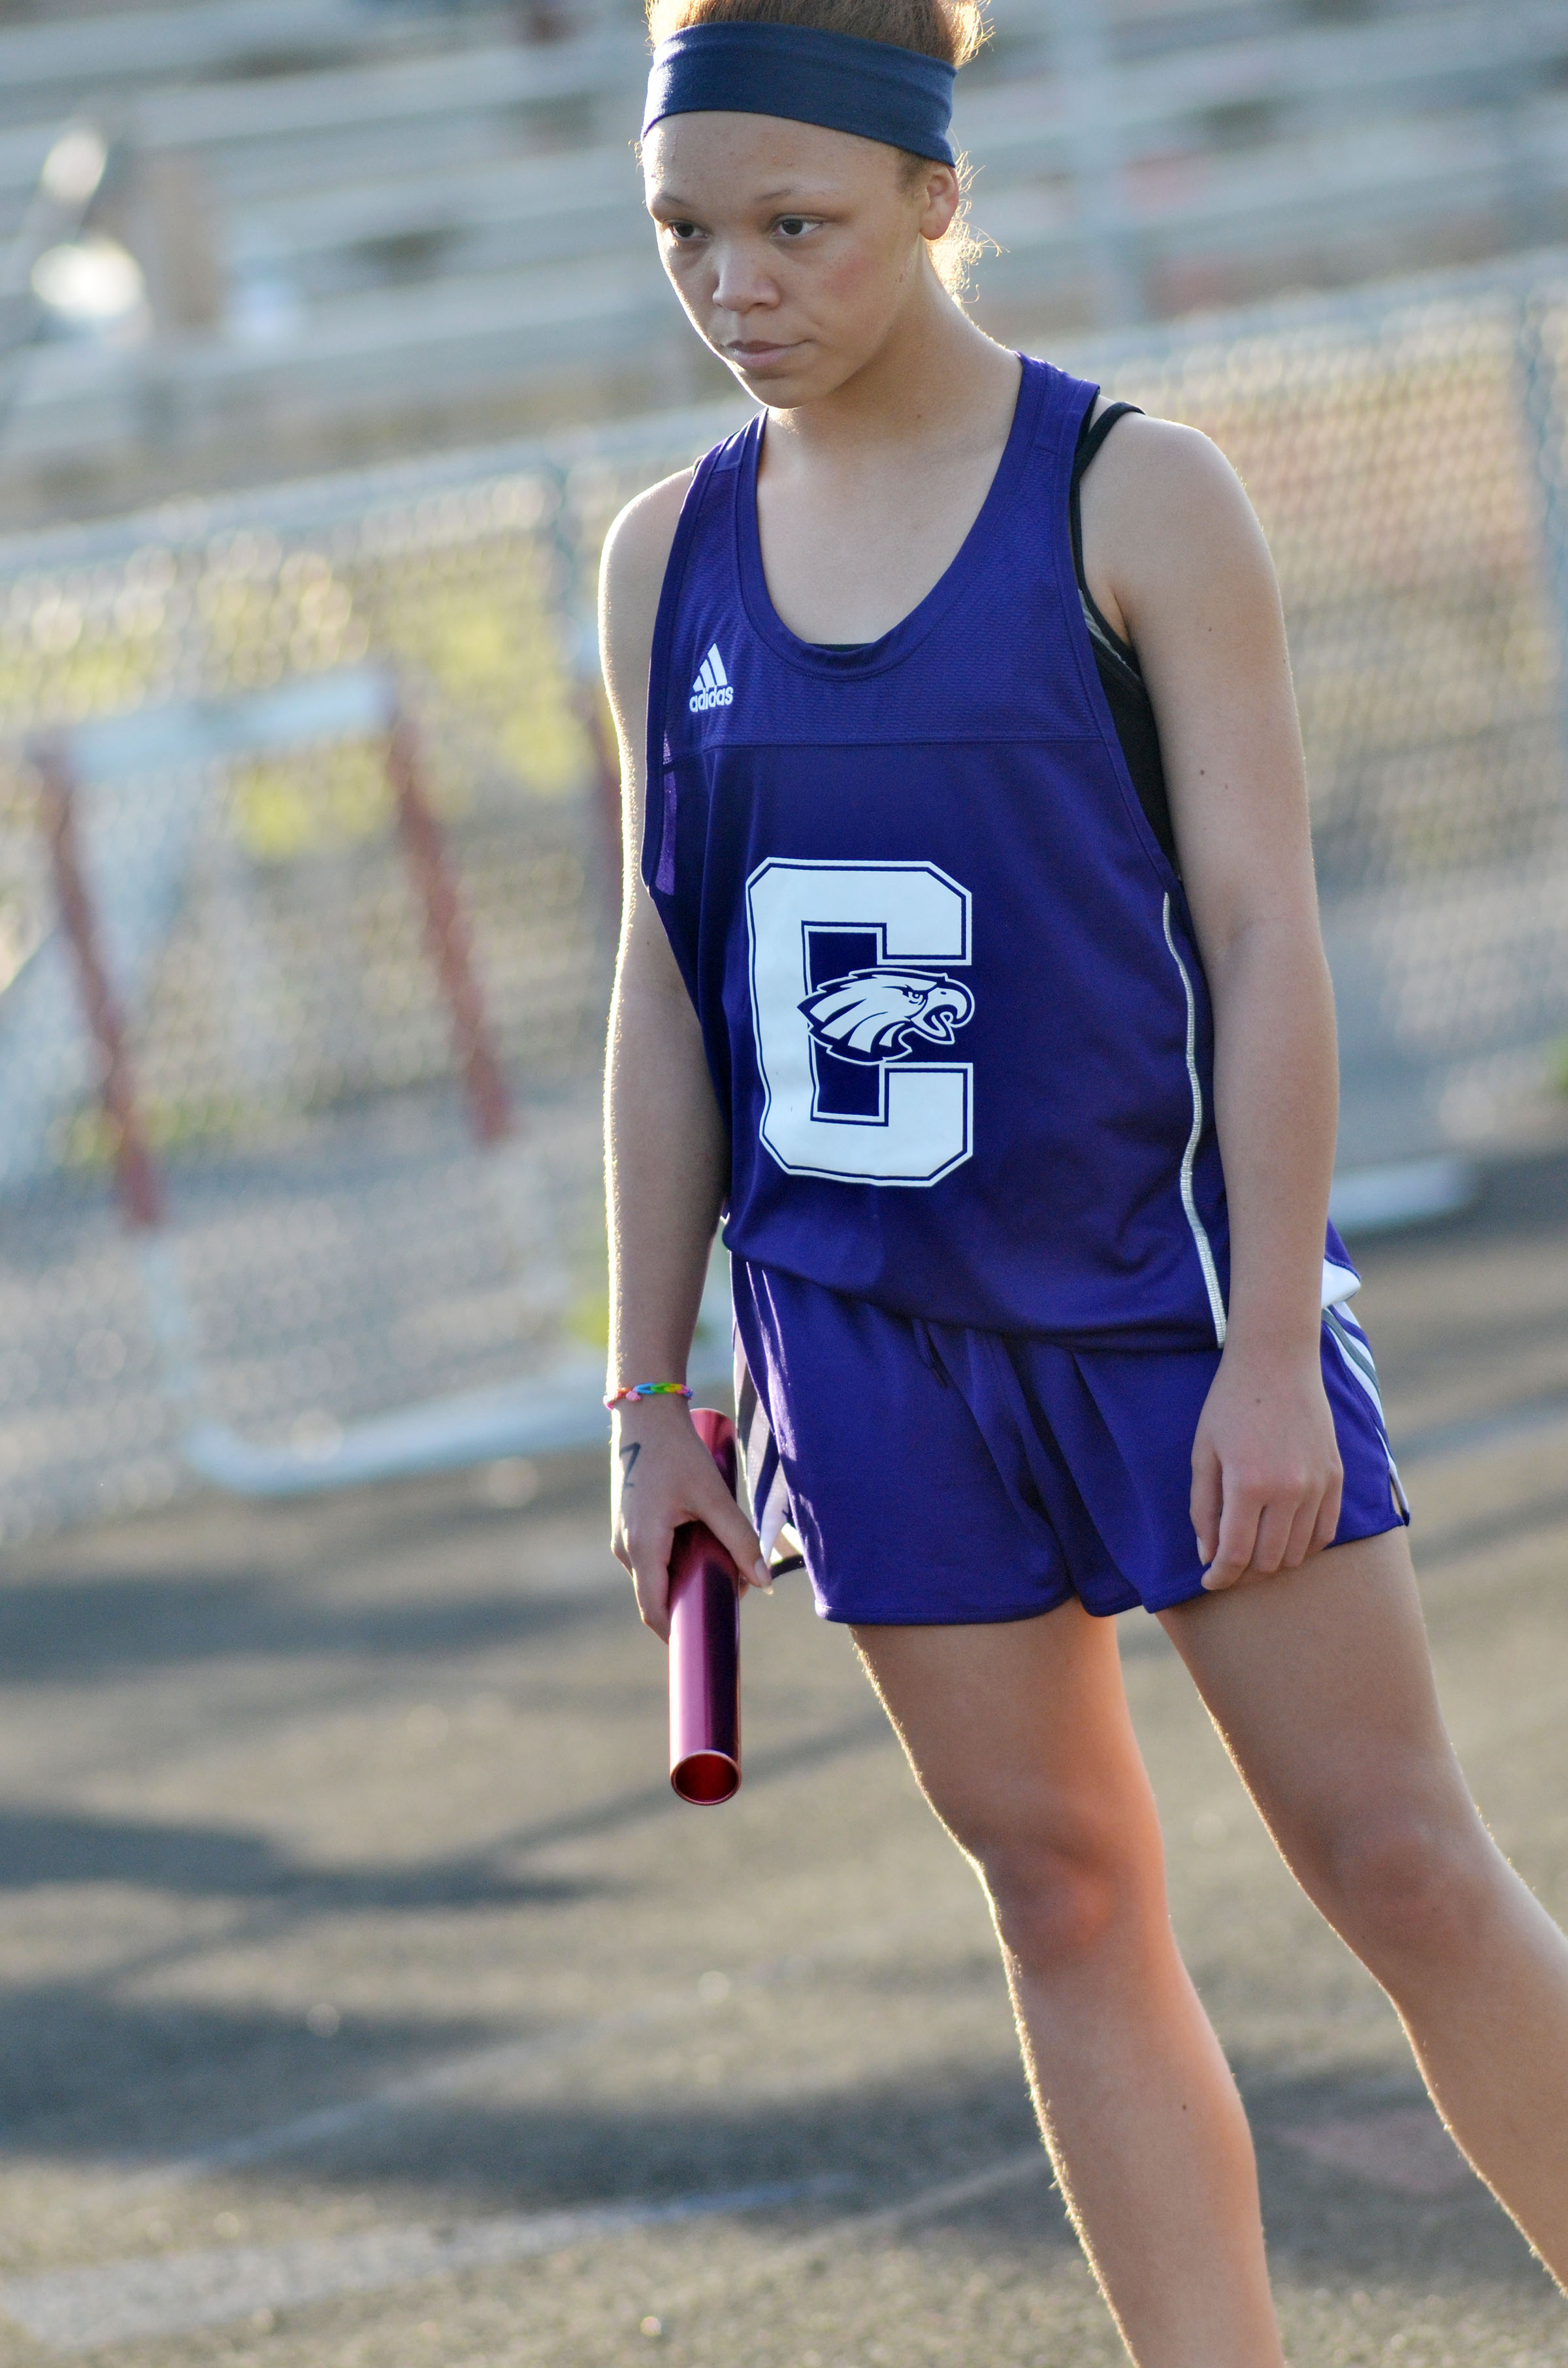 Campbellsville Middle School seventh-grader Kitana Taylor gets ready to run.